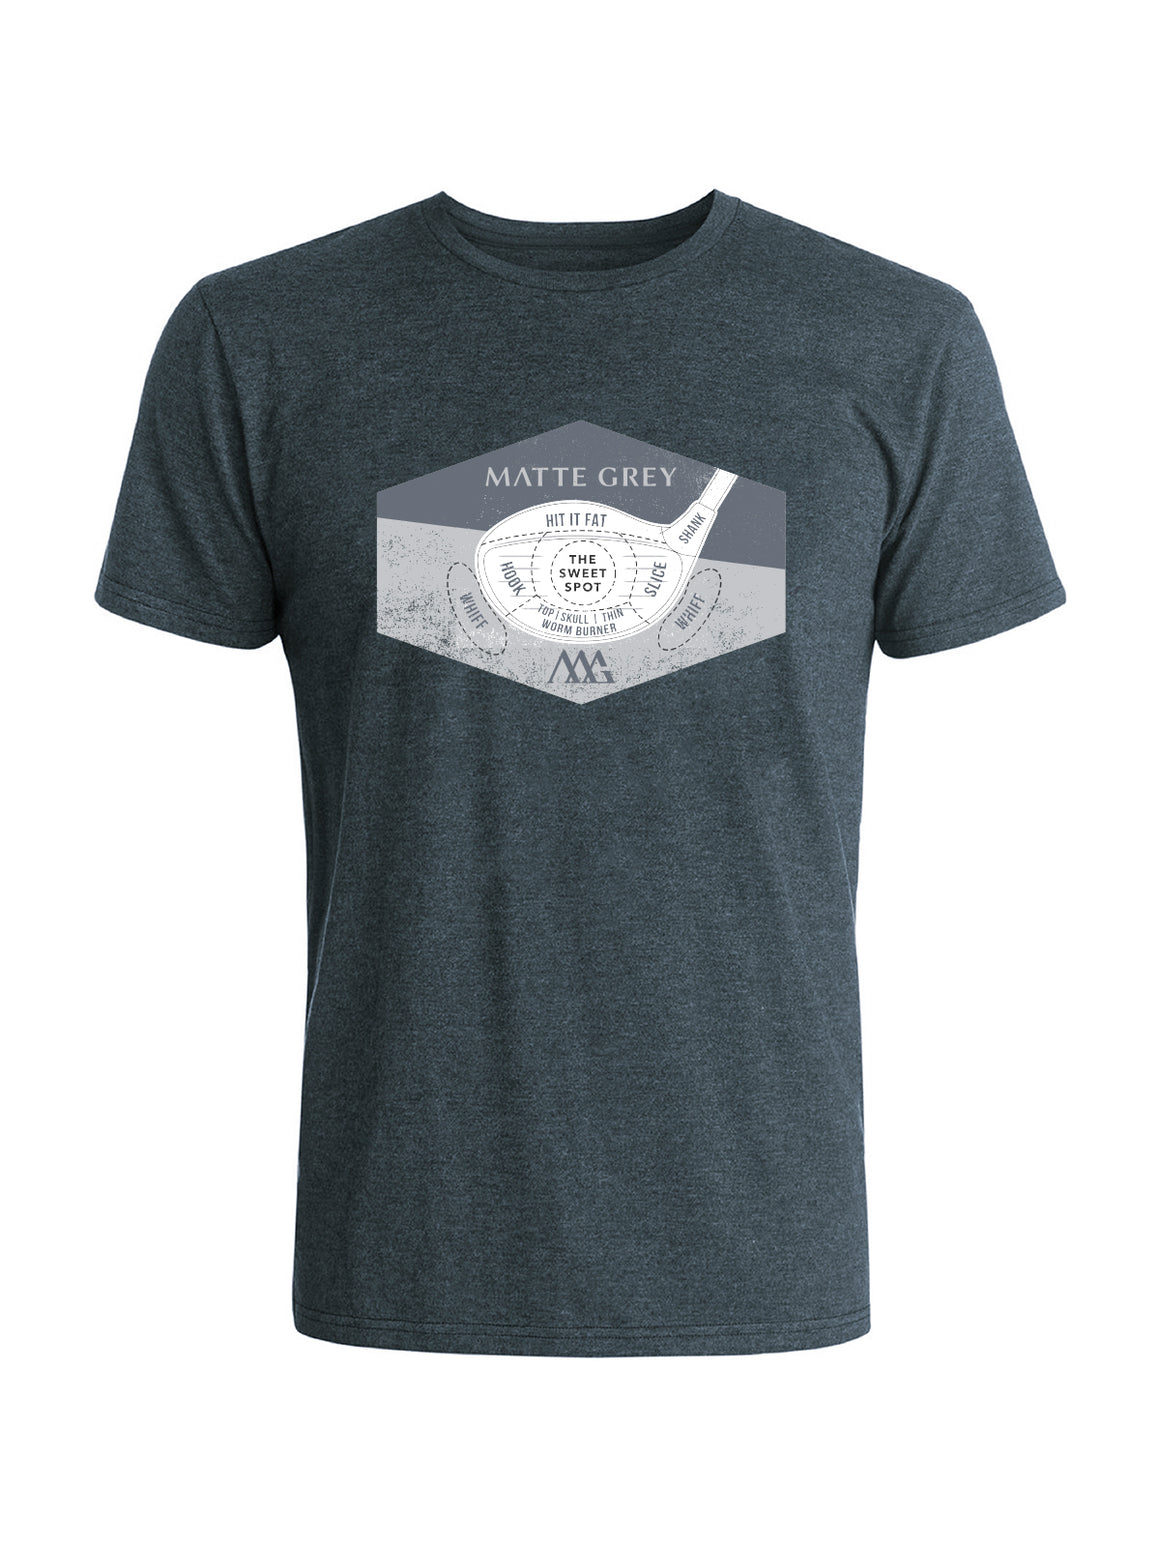 Options Tee Shirt - Indigo Black Heather